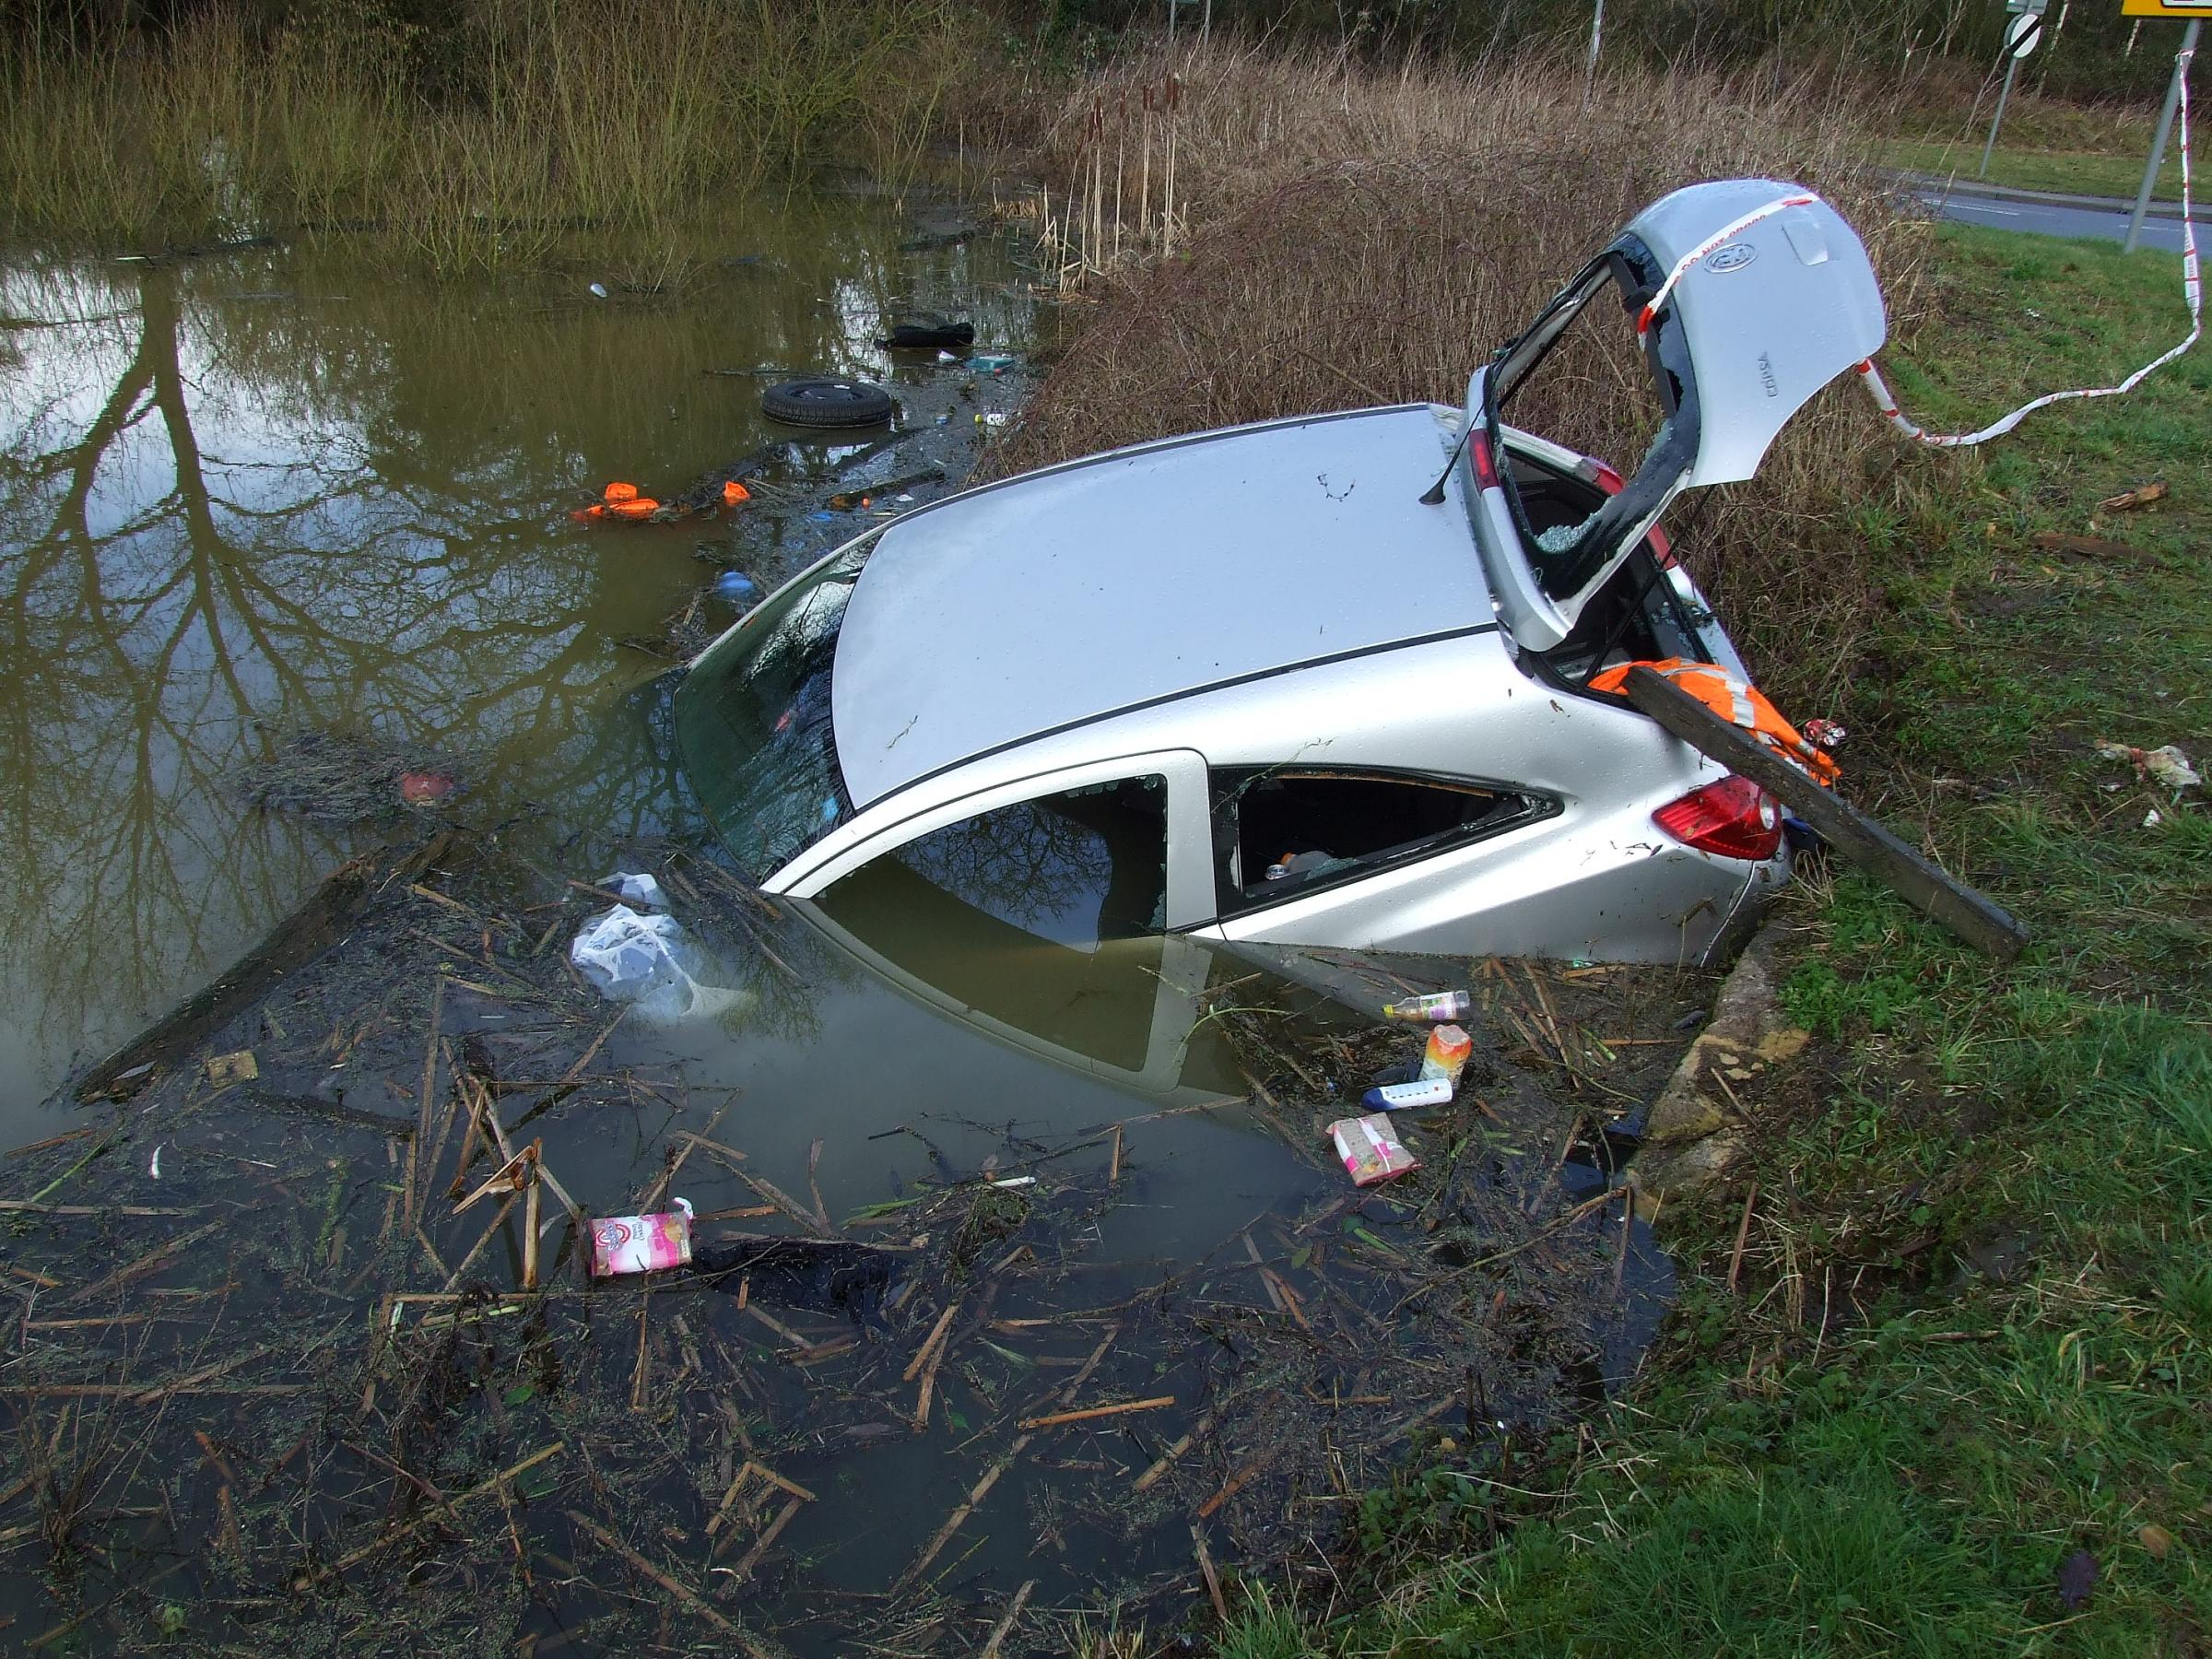 Two men escape from car after it plunges into water near Ashton Keynes